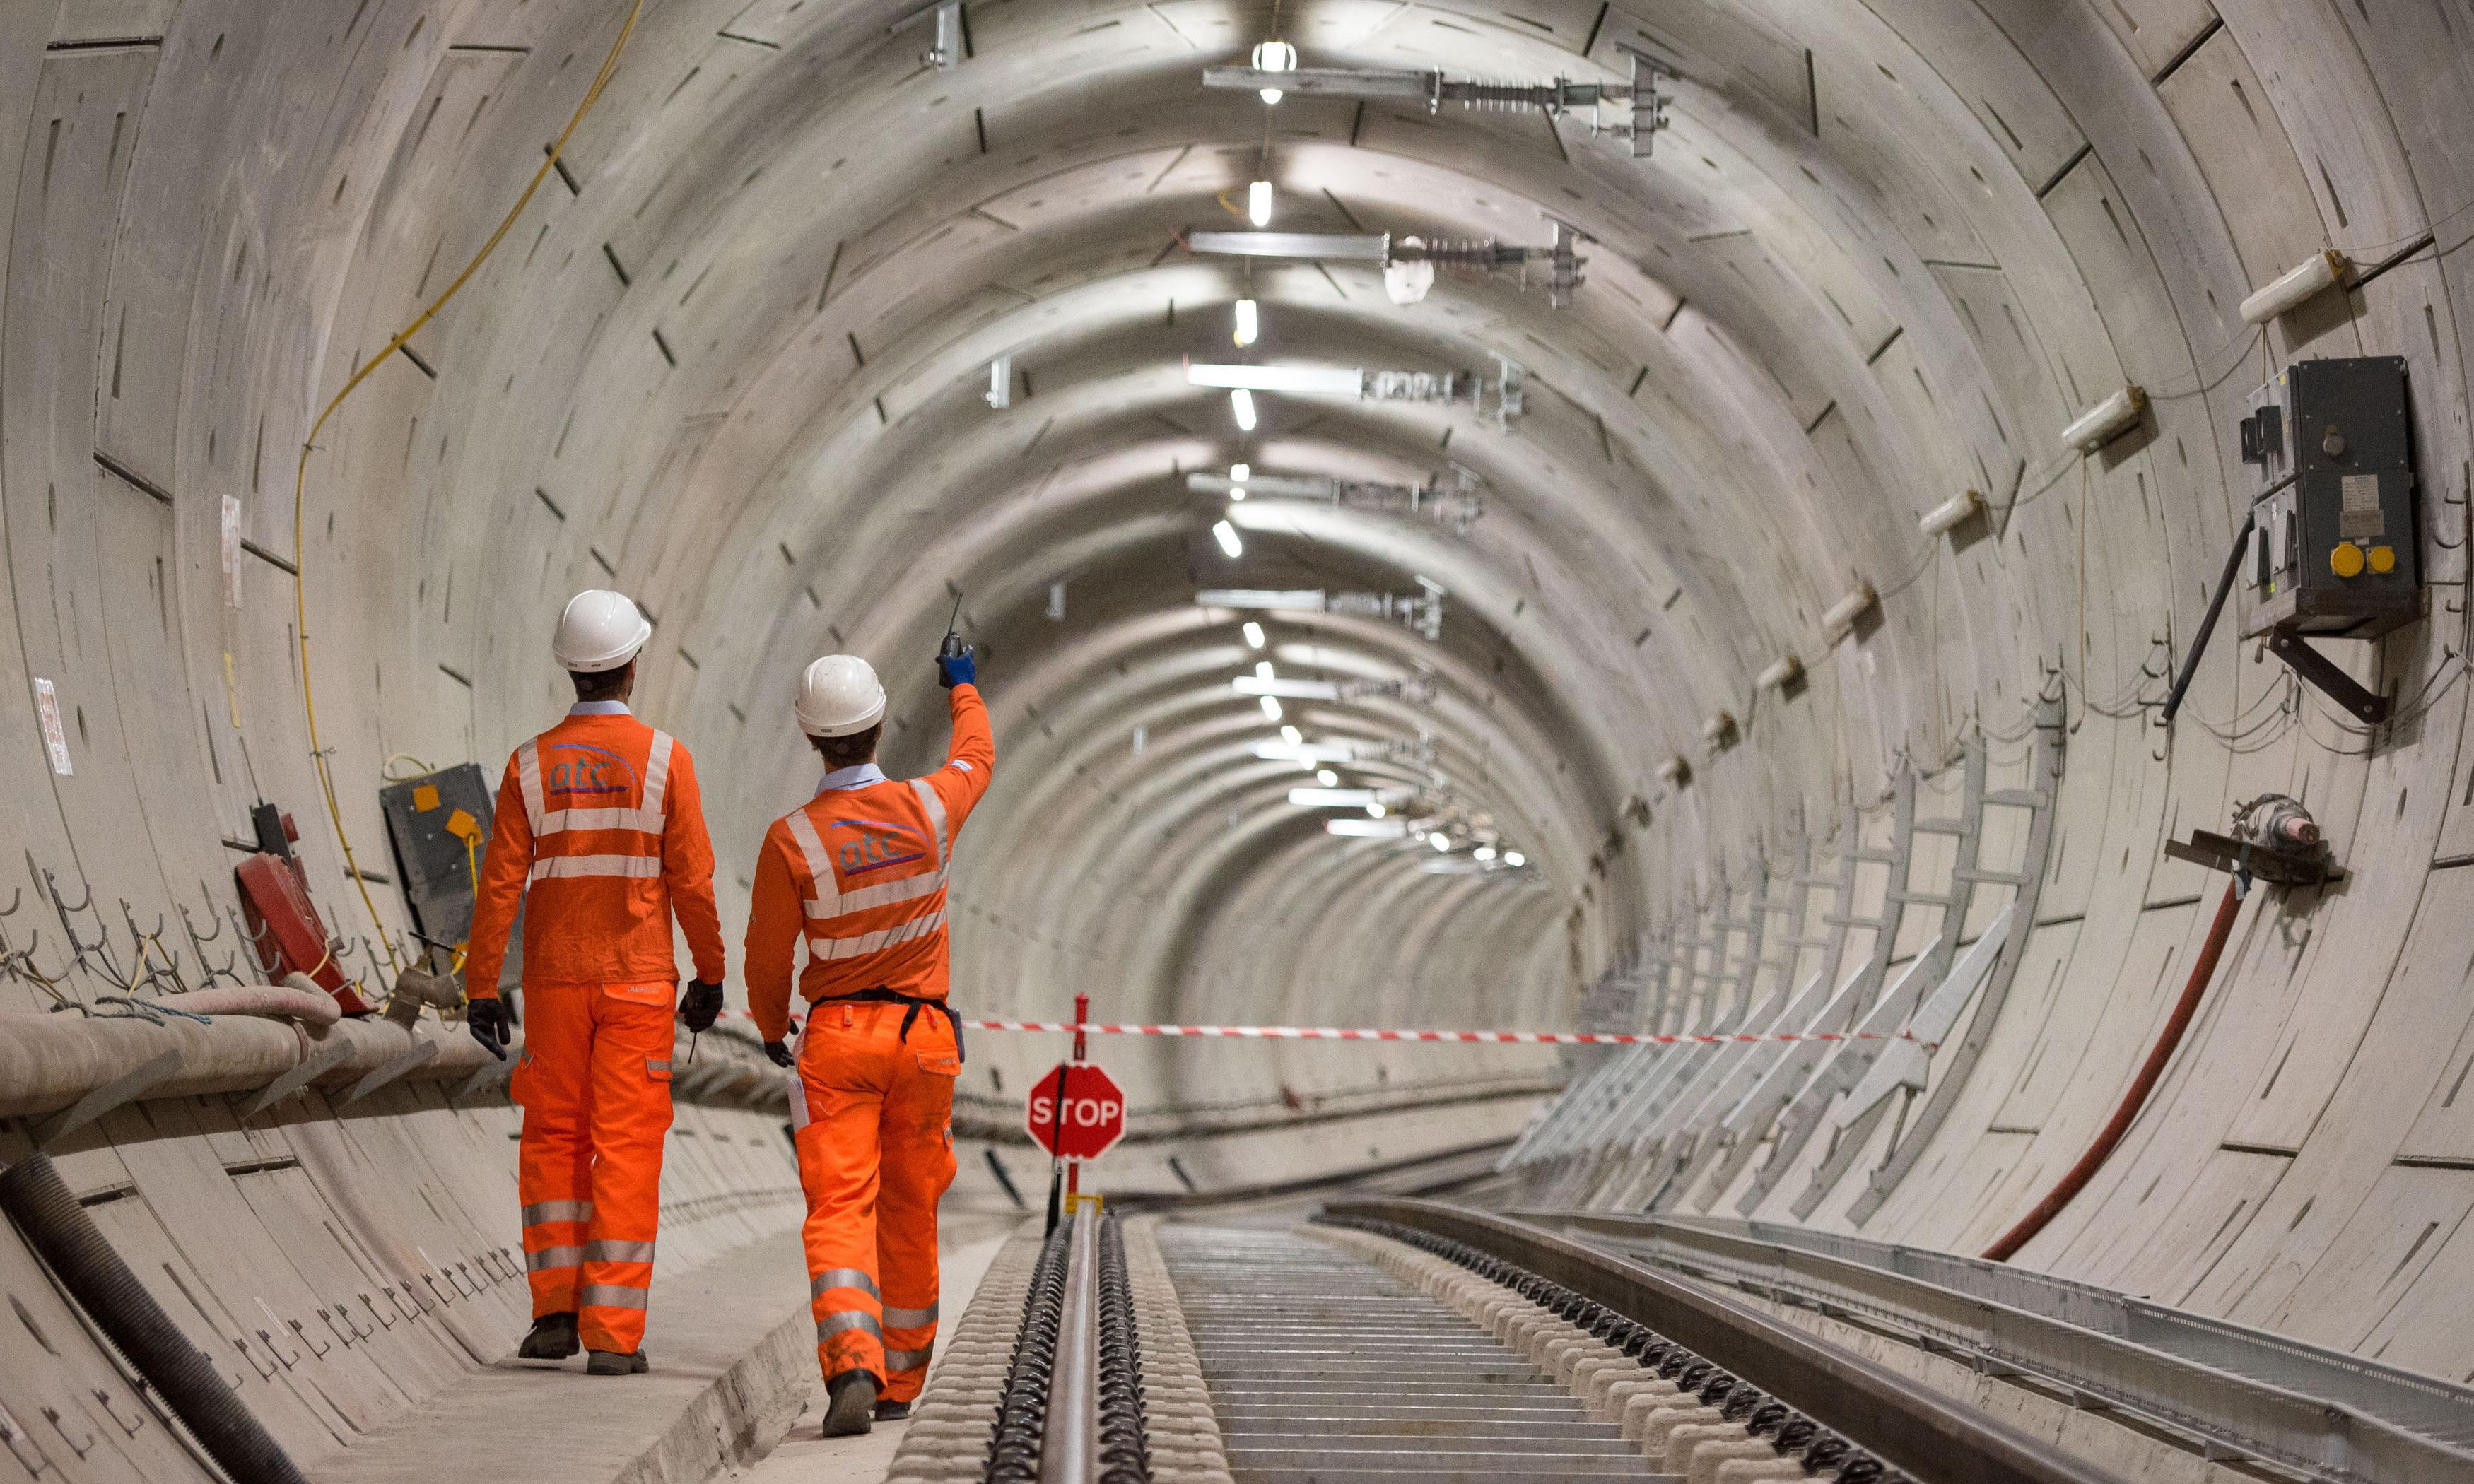 Crossrail boss steps down after project delays